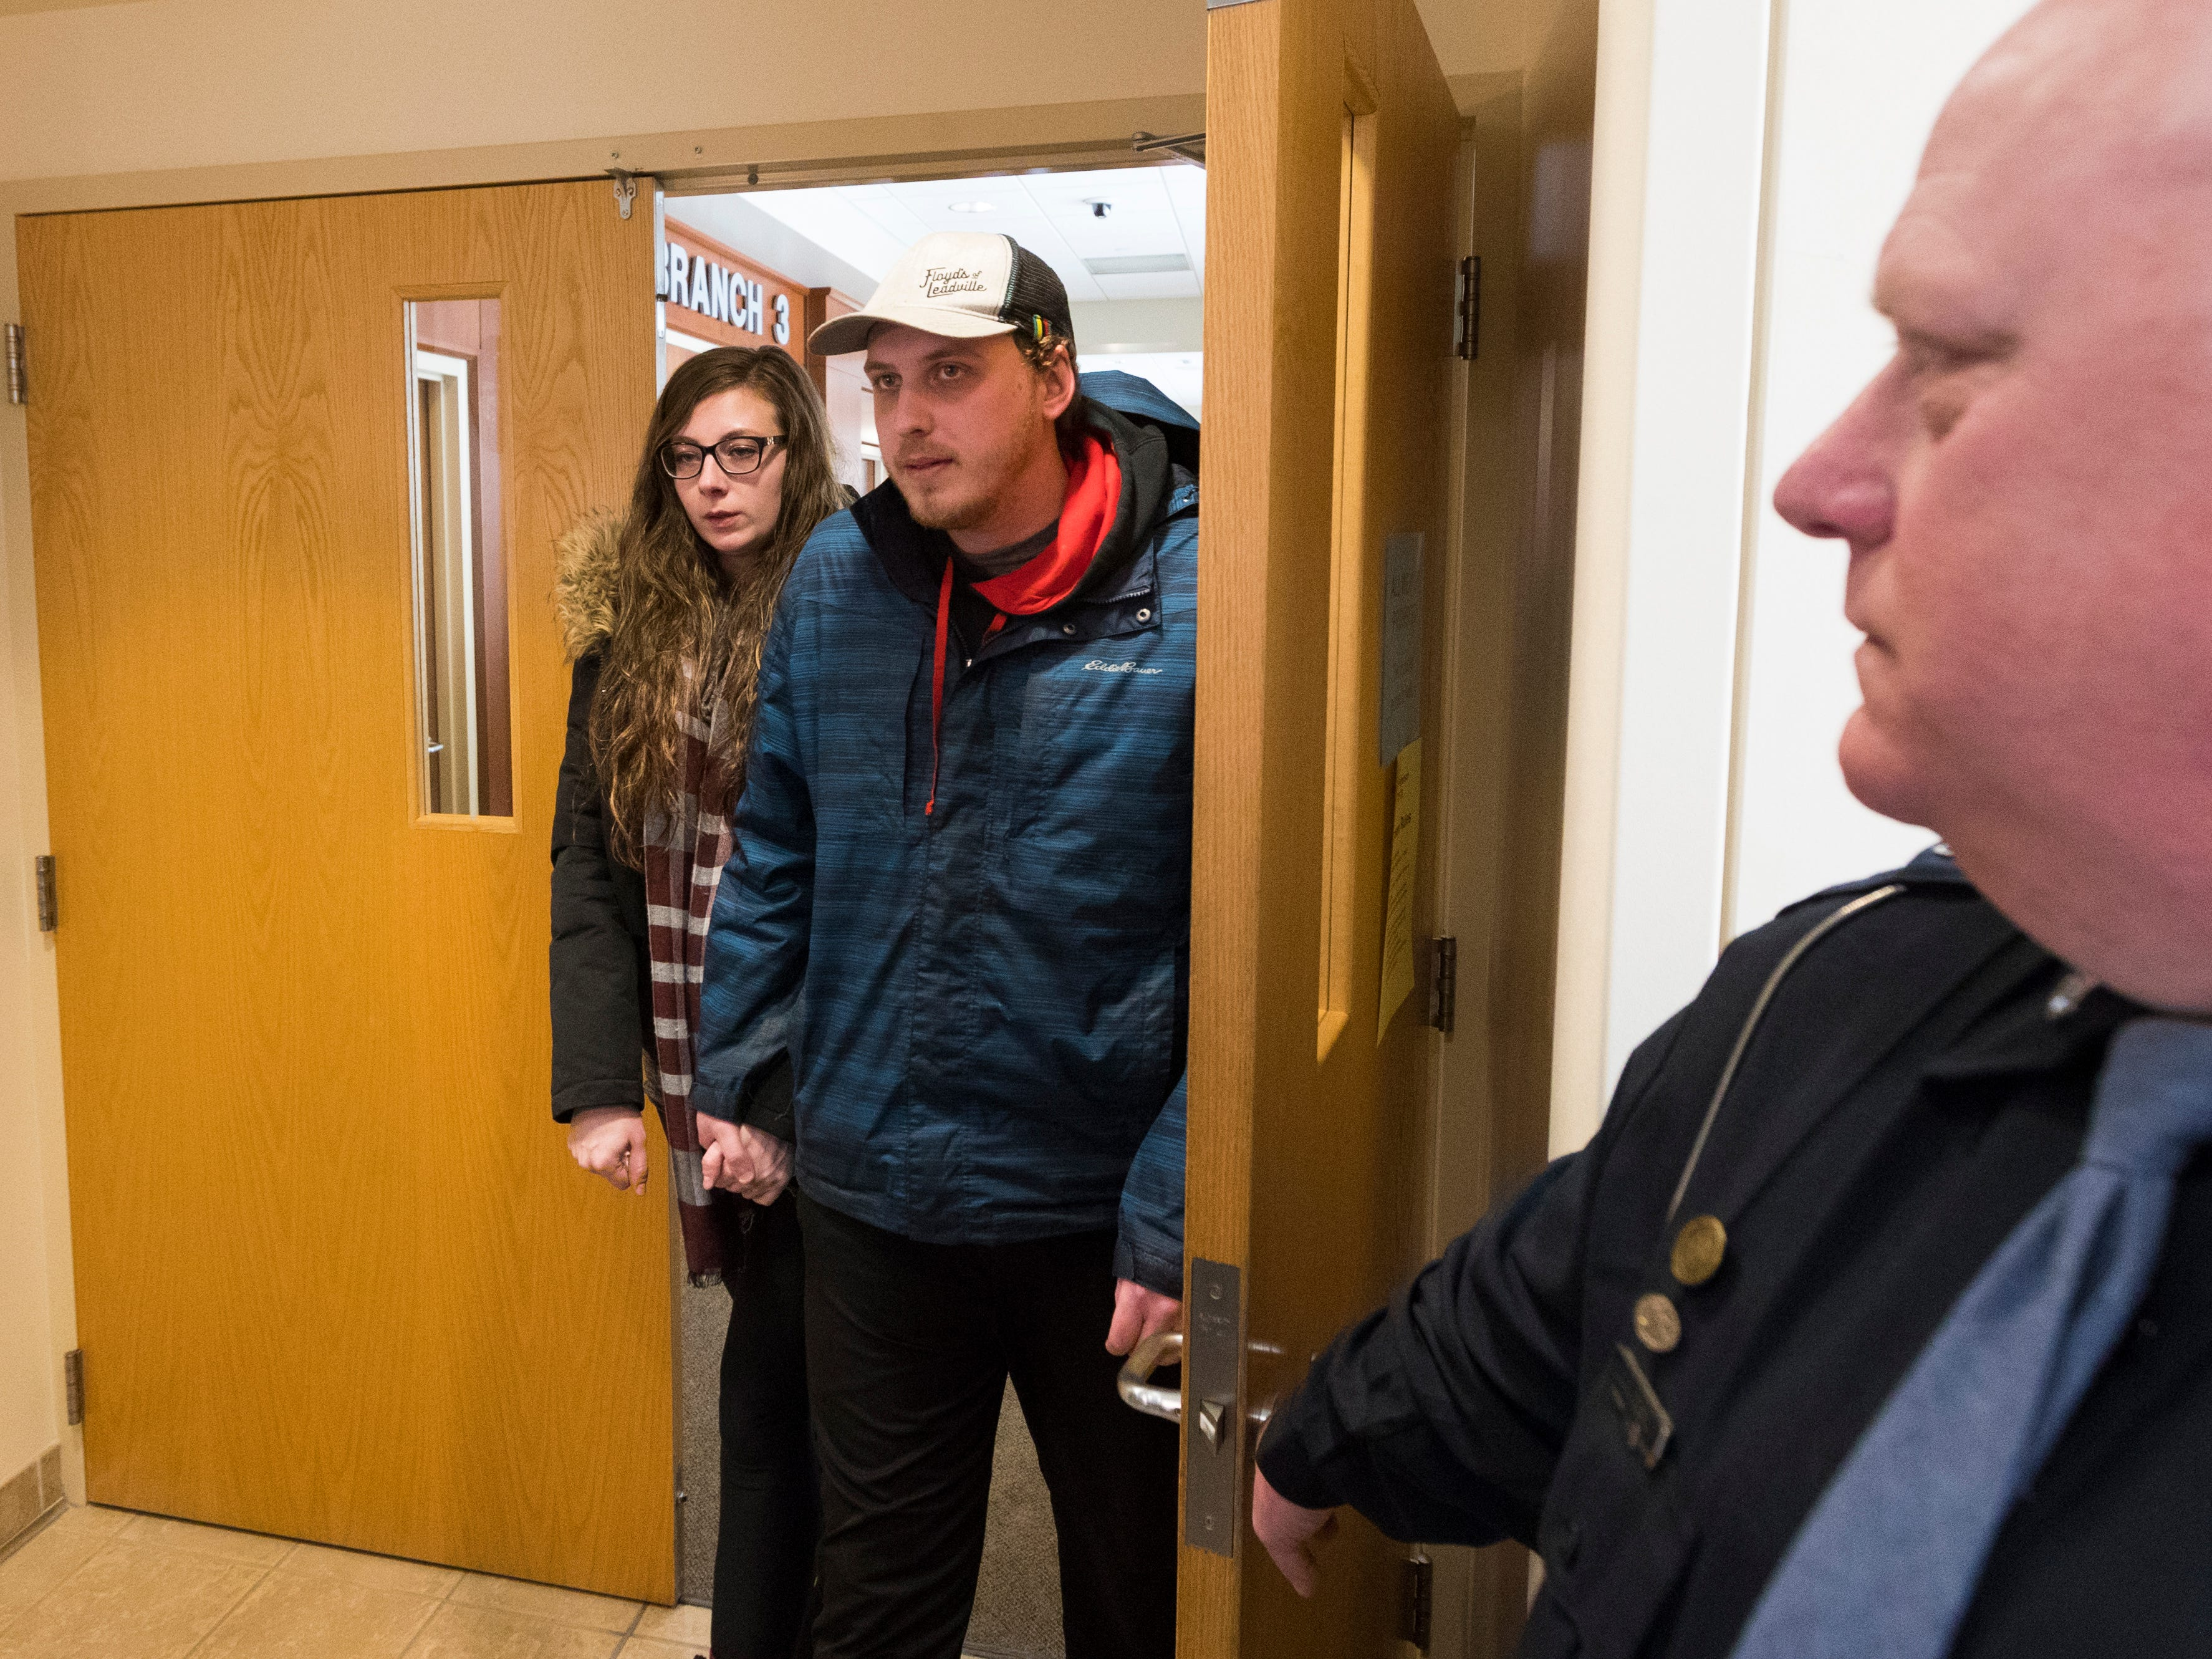 Erik Patterson and his sister, Katie, siblings of Jake Patterson, leave following a court appearance by their brother Wednesday, February 6, 2019 at the Barron County Justice Center in Barron, Wis.  Patterson is charged with the murders of Denise and James Closs and the kidnapping of their 13-year-old daughter, Jayme, who escaped after 88-days being held captive.